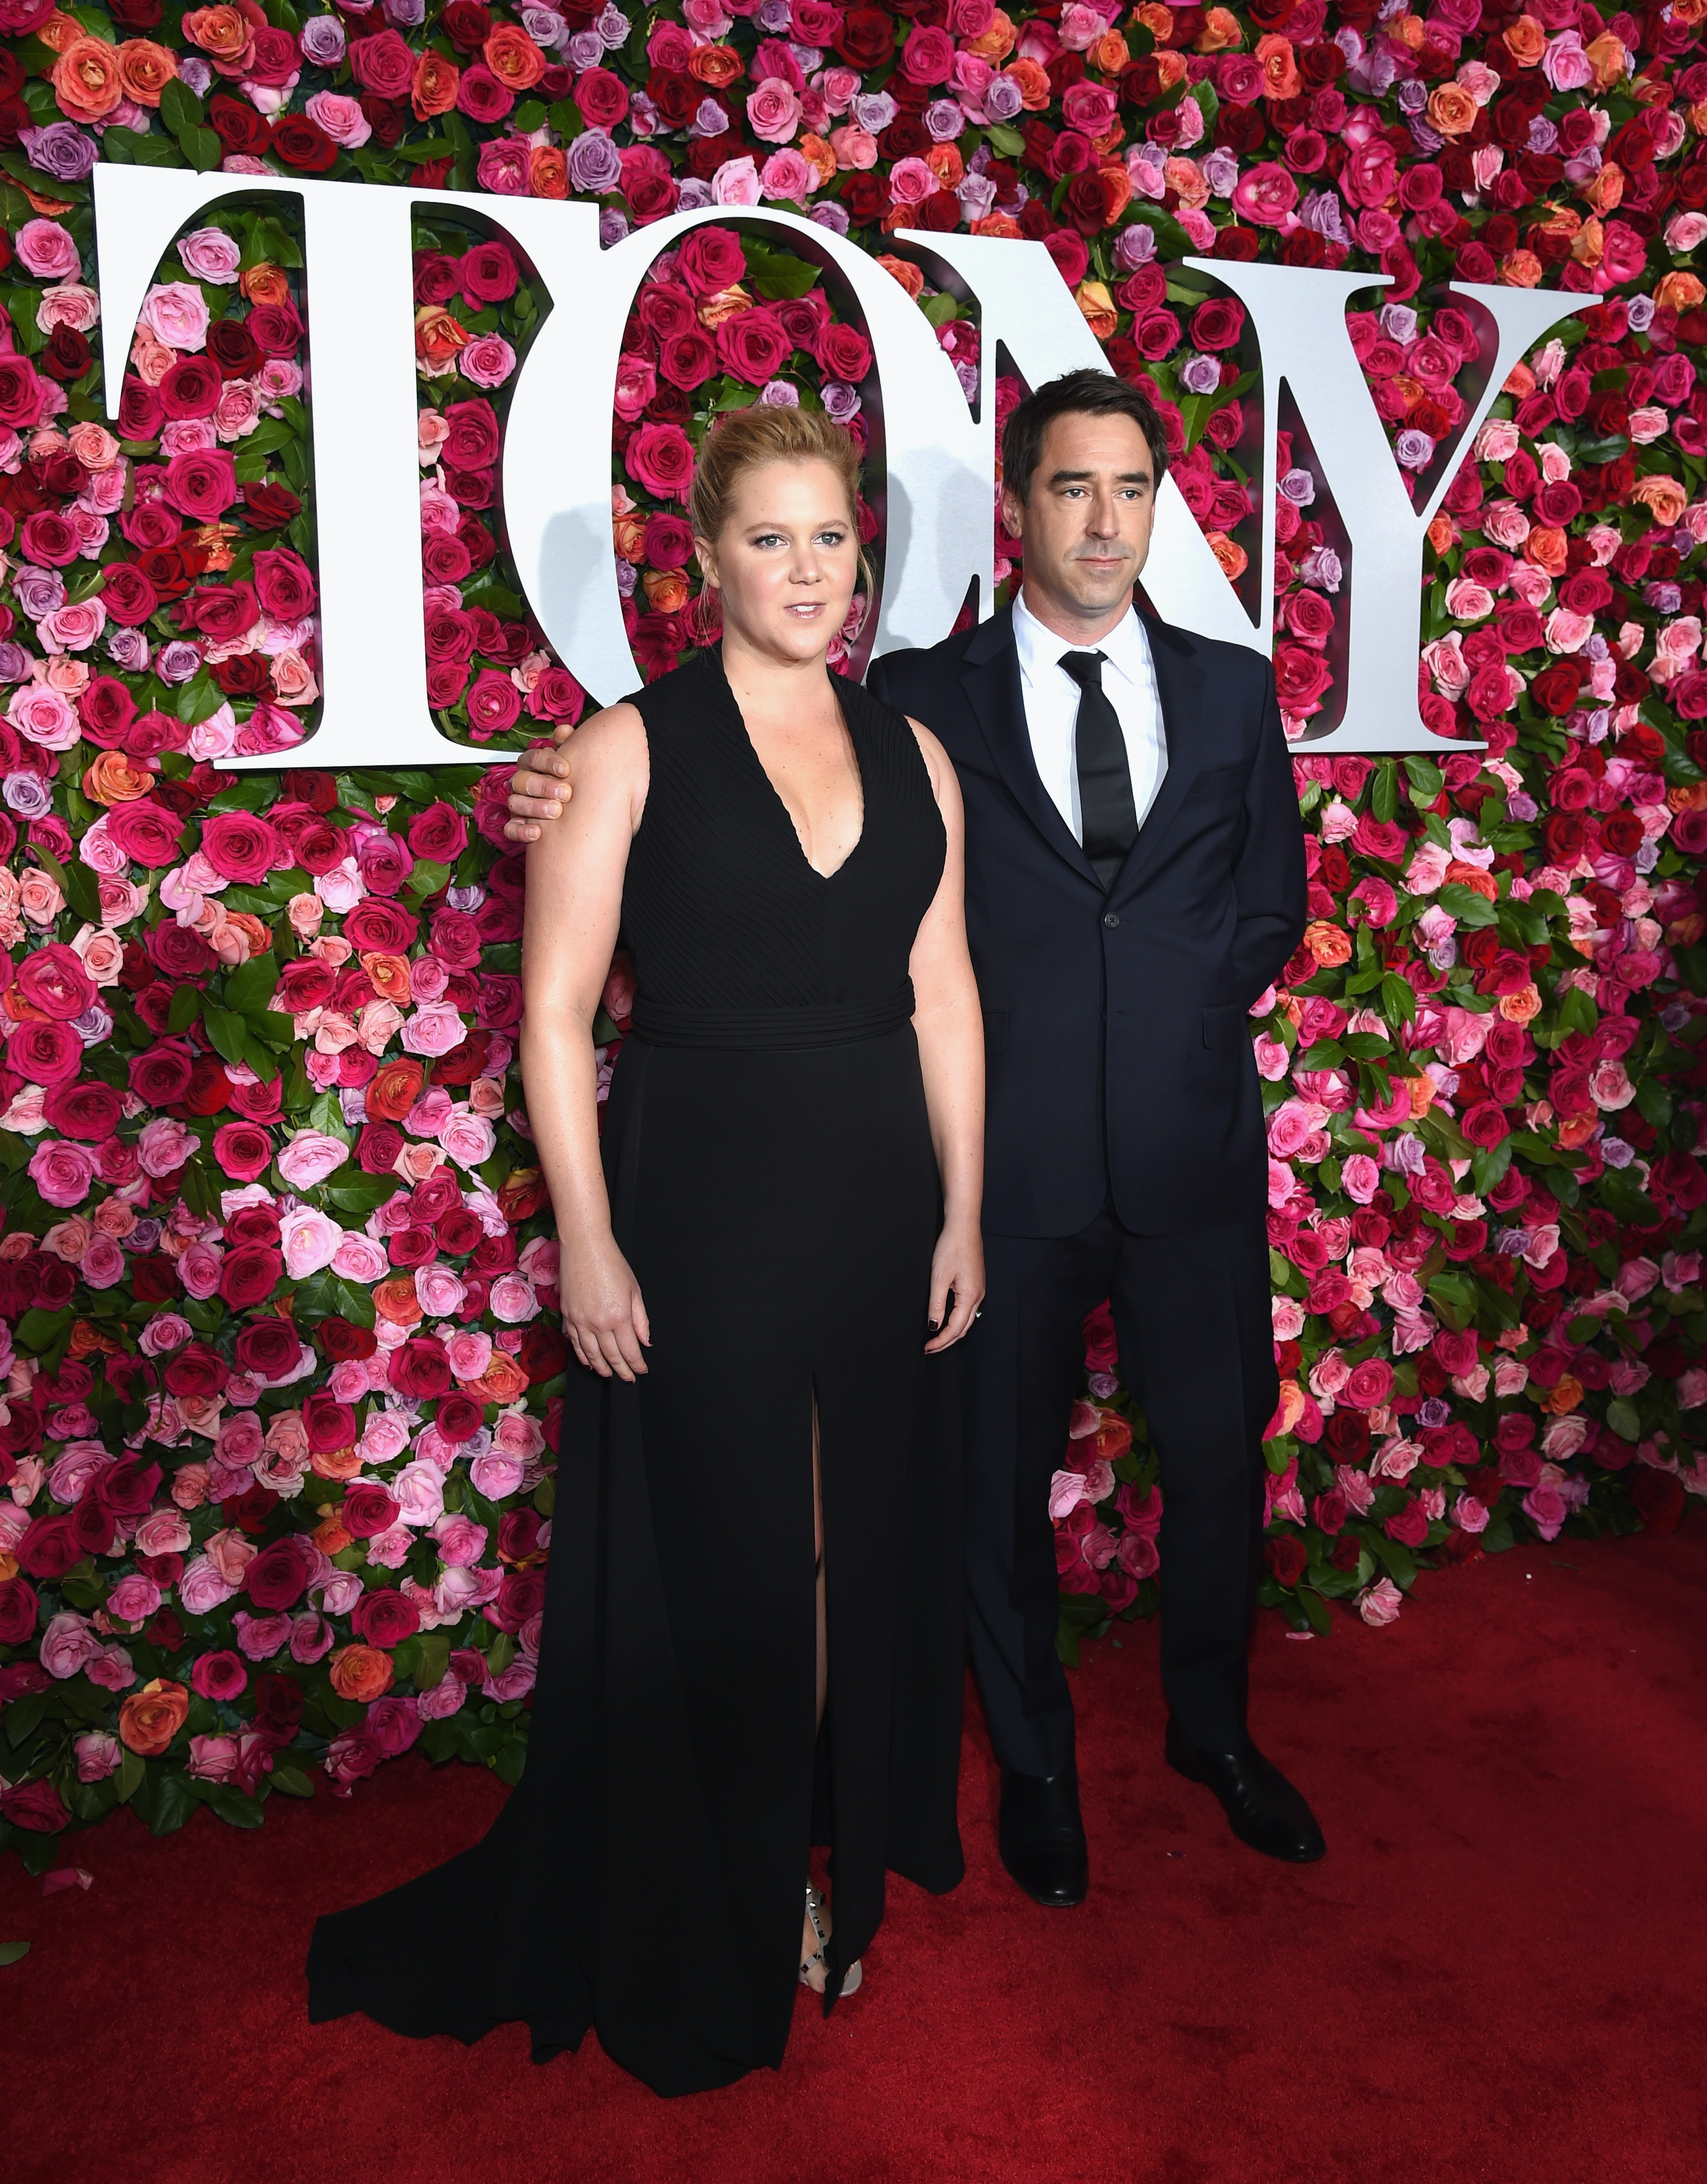 These Pictures Of Amy Schumer Chris Fischer On The Tony Awards Red Carpet Are Cute Af